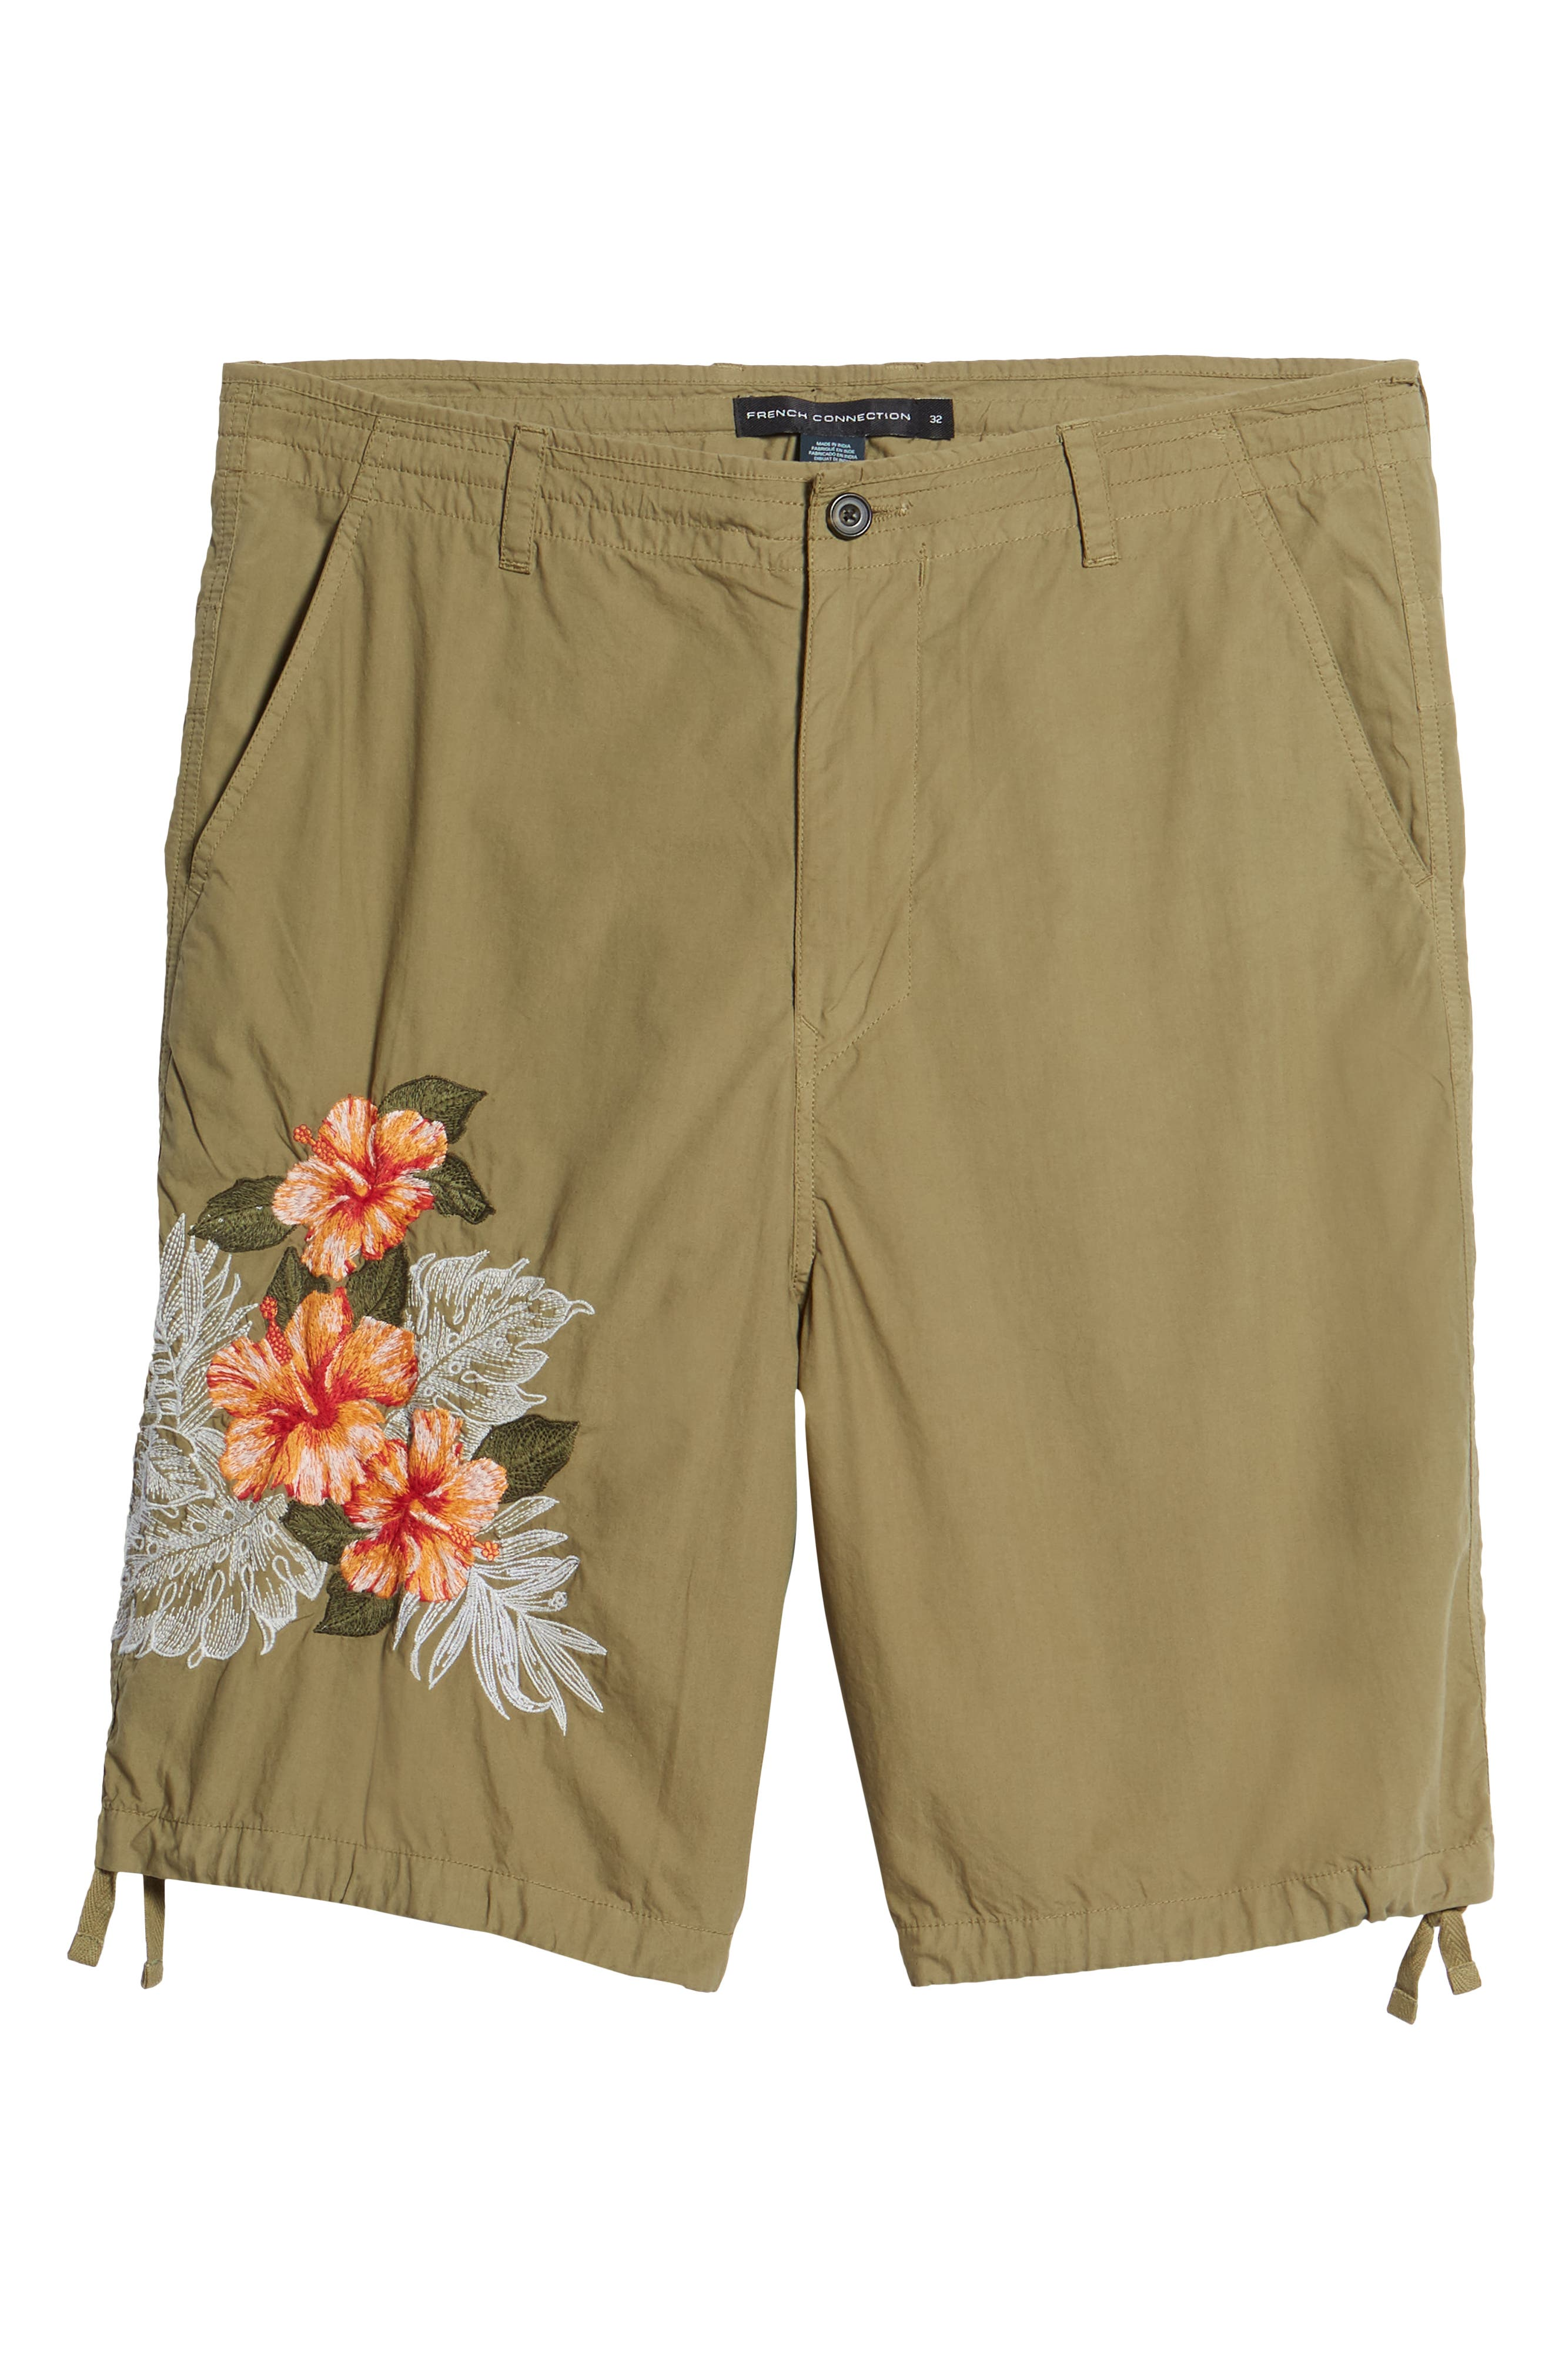 Embroidered Poplin Shorts,                             Alternate thumbnail 6, color,                             301